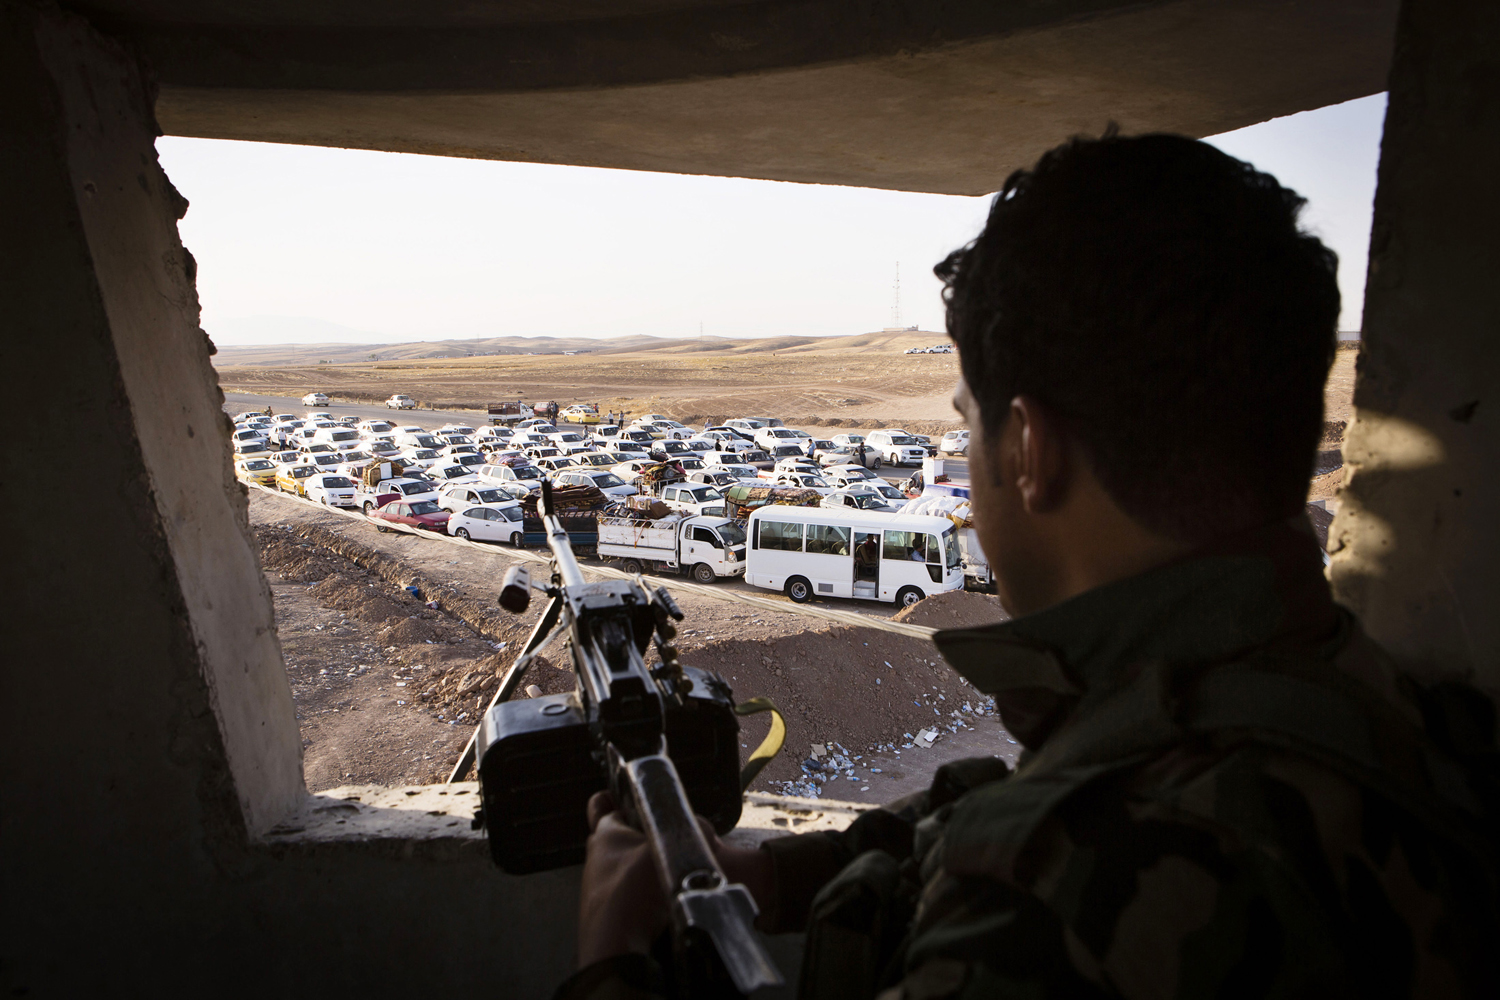 An Iraqi security forces member with his weapon takes position as people, who fled from the violence in Mosul, arrive in their vehicles at a camp for internally displaced people on the outskirts of Erbil in Iraq's Kurdistan region June 14.